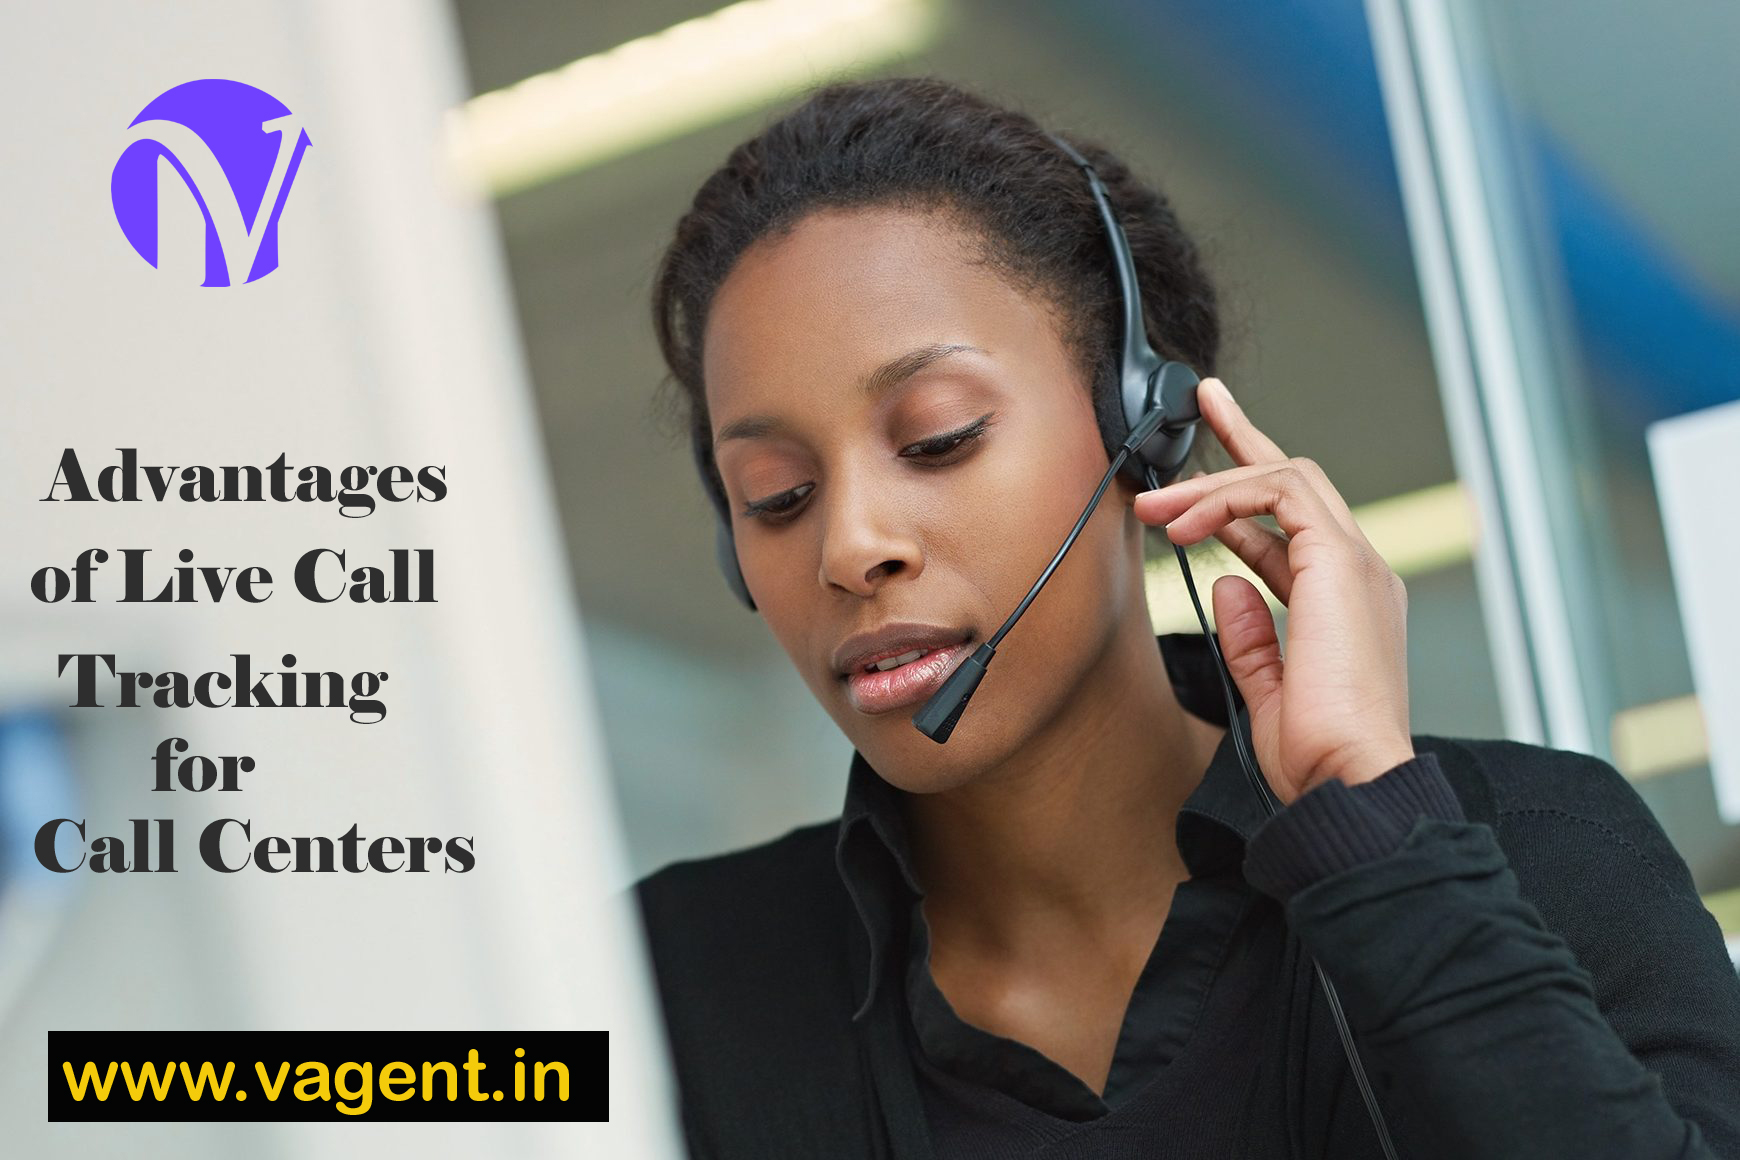 Advantages of Live Call Tracking for Call Centers